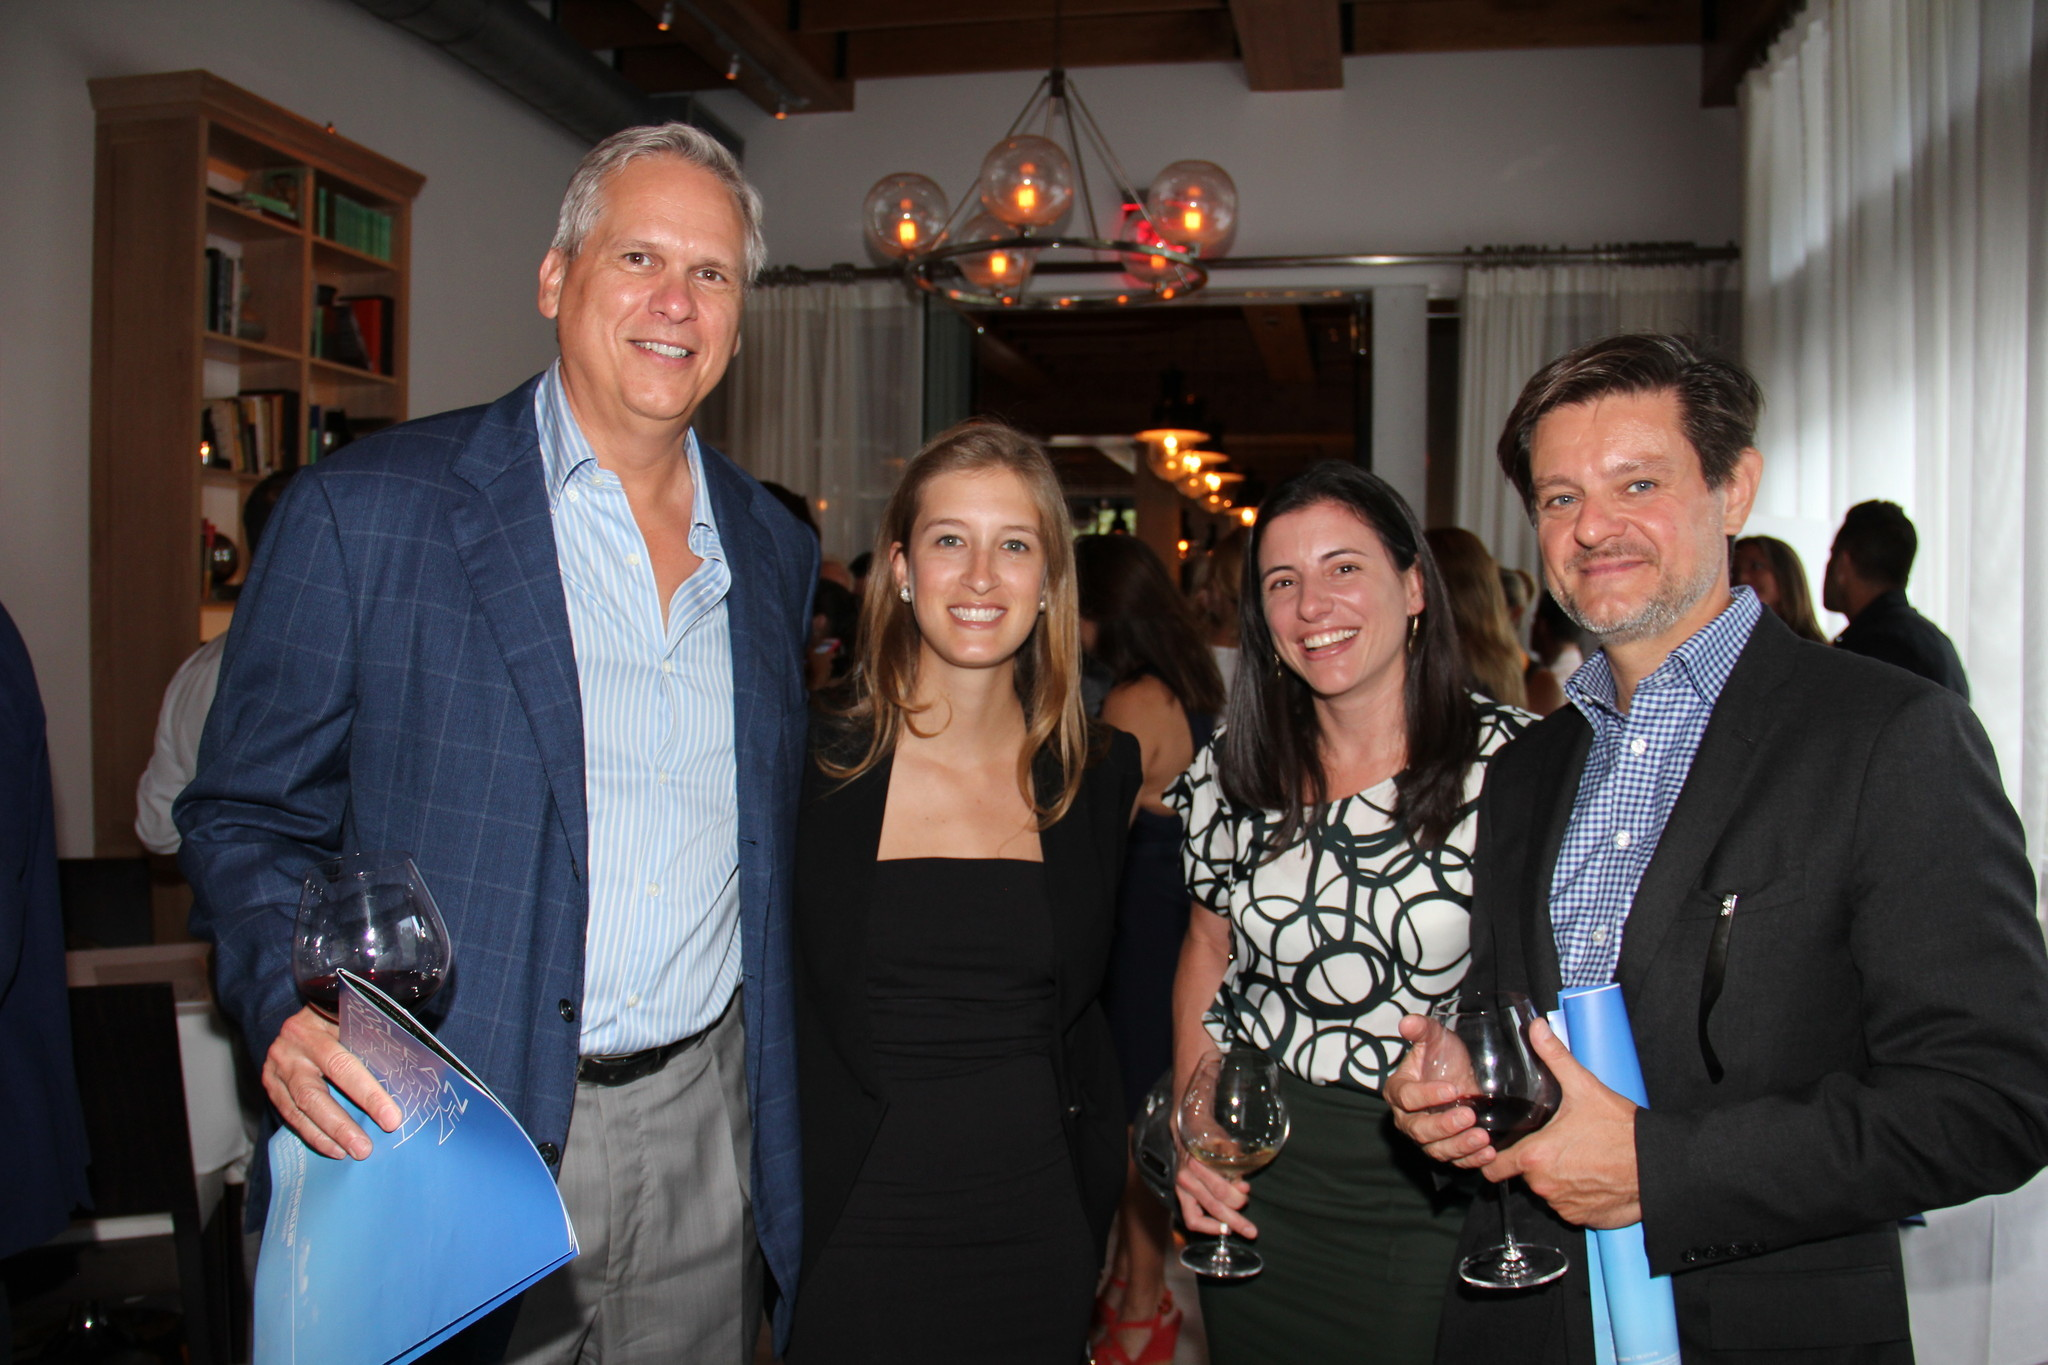 Society Scene photos - 321 Ocean and Cervera PH Launch Event